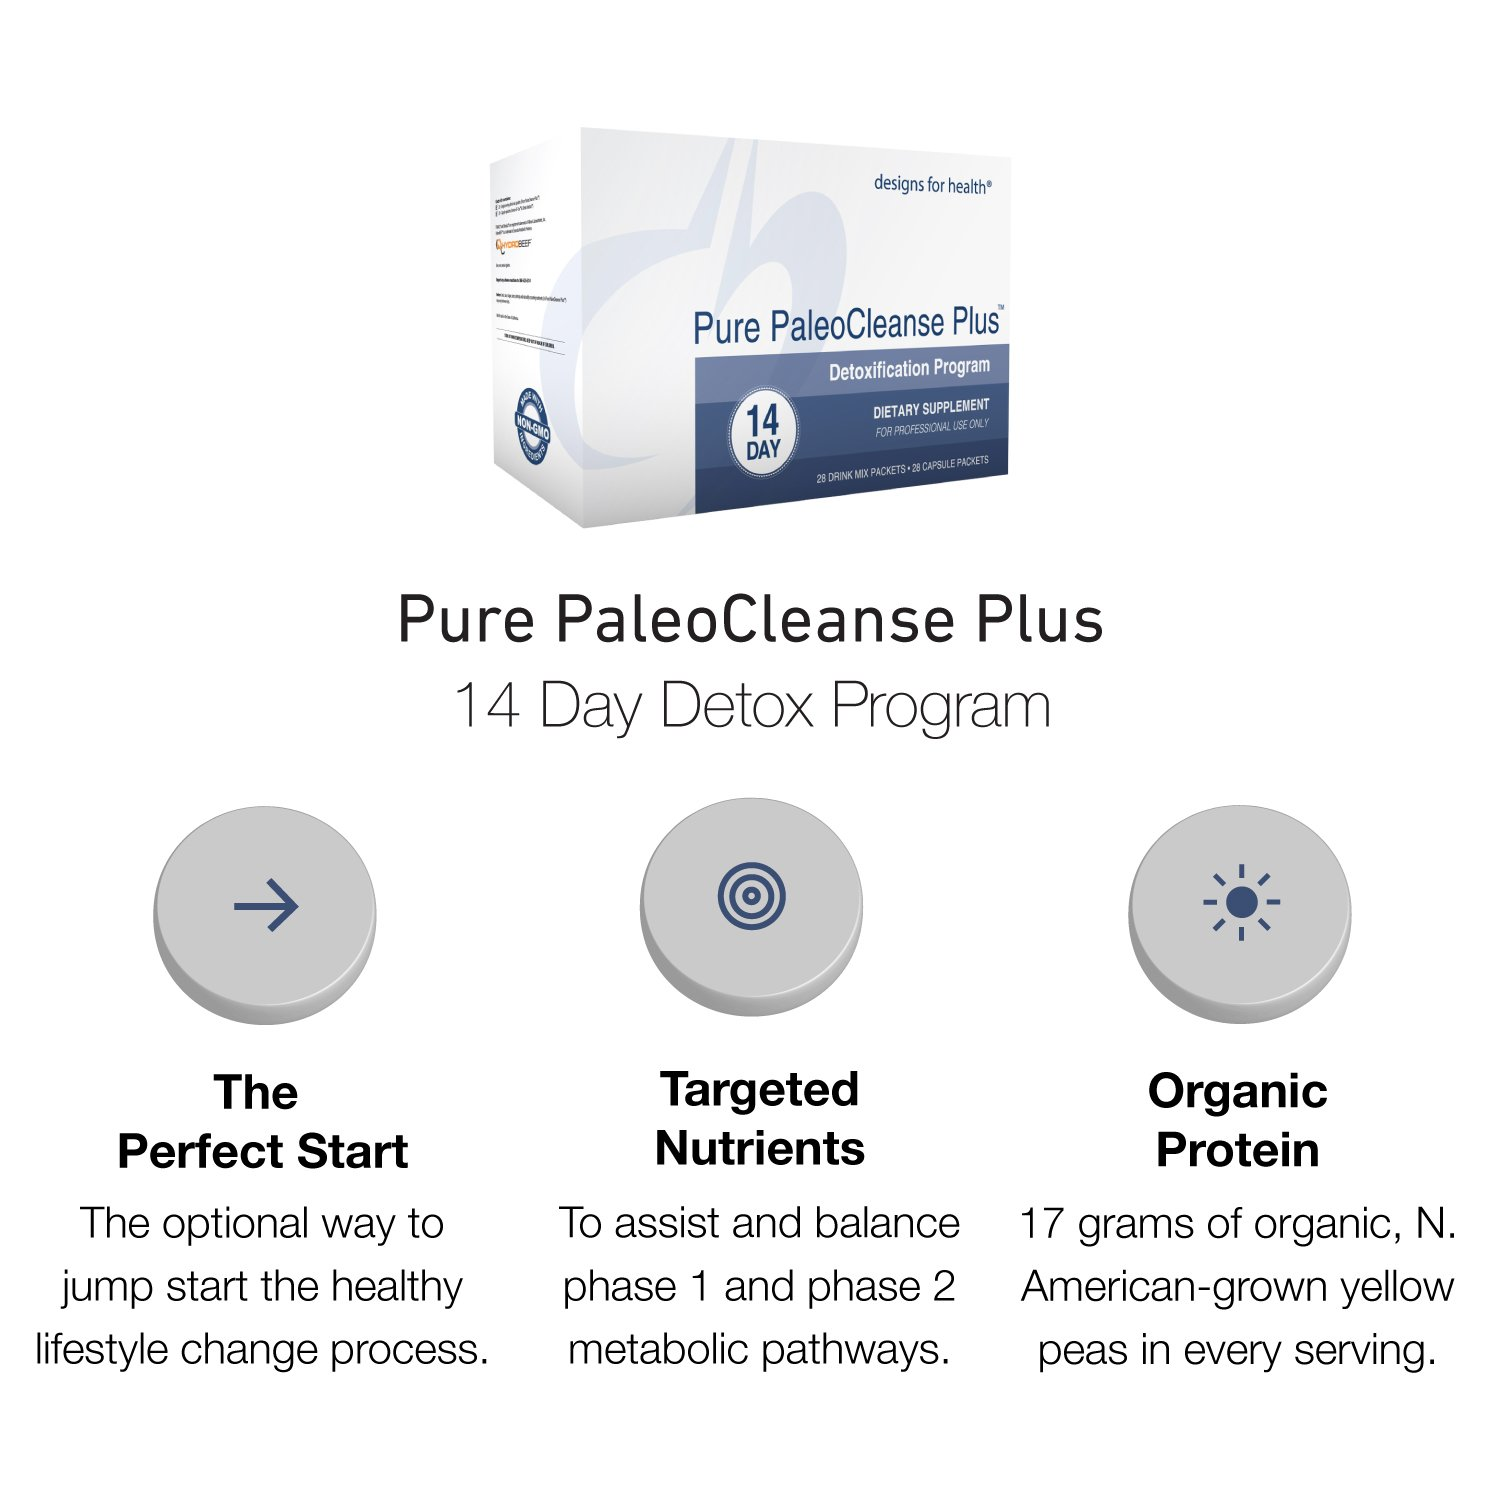 Designs for Health - Pure PaleoCleanse Plus 14 Day Detox Program - Bone Broth Protein + Green Tea + Alkalizing Vegetables for Liver Support, 28 Packs by designs for health (Image #3)